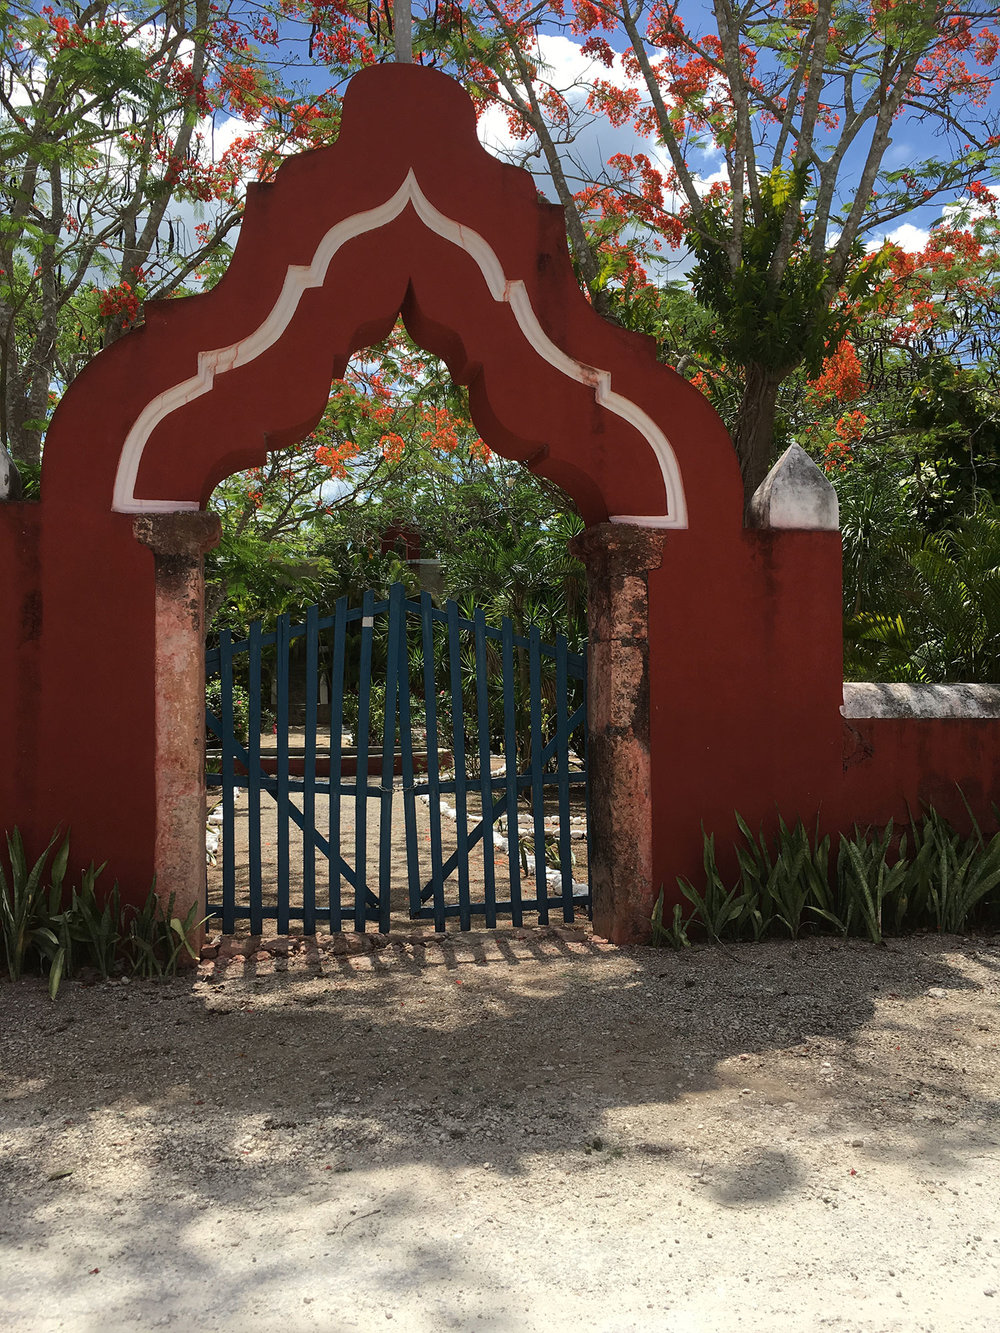 Entrance gate to Hacienda San Antonio Dzina; and the well on the right.